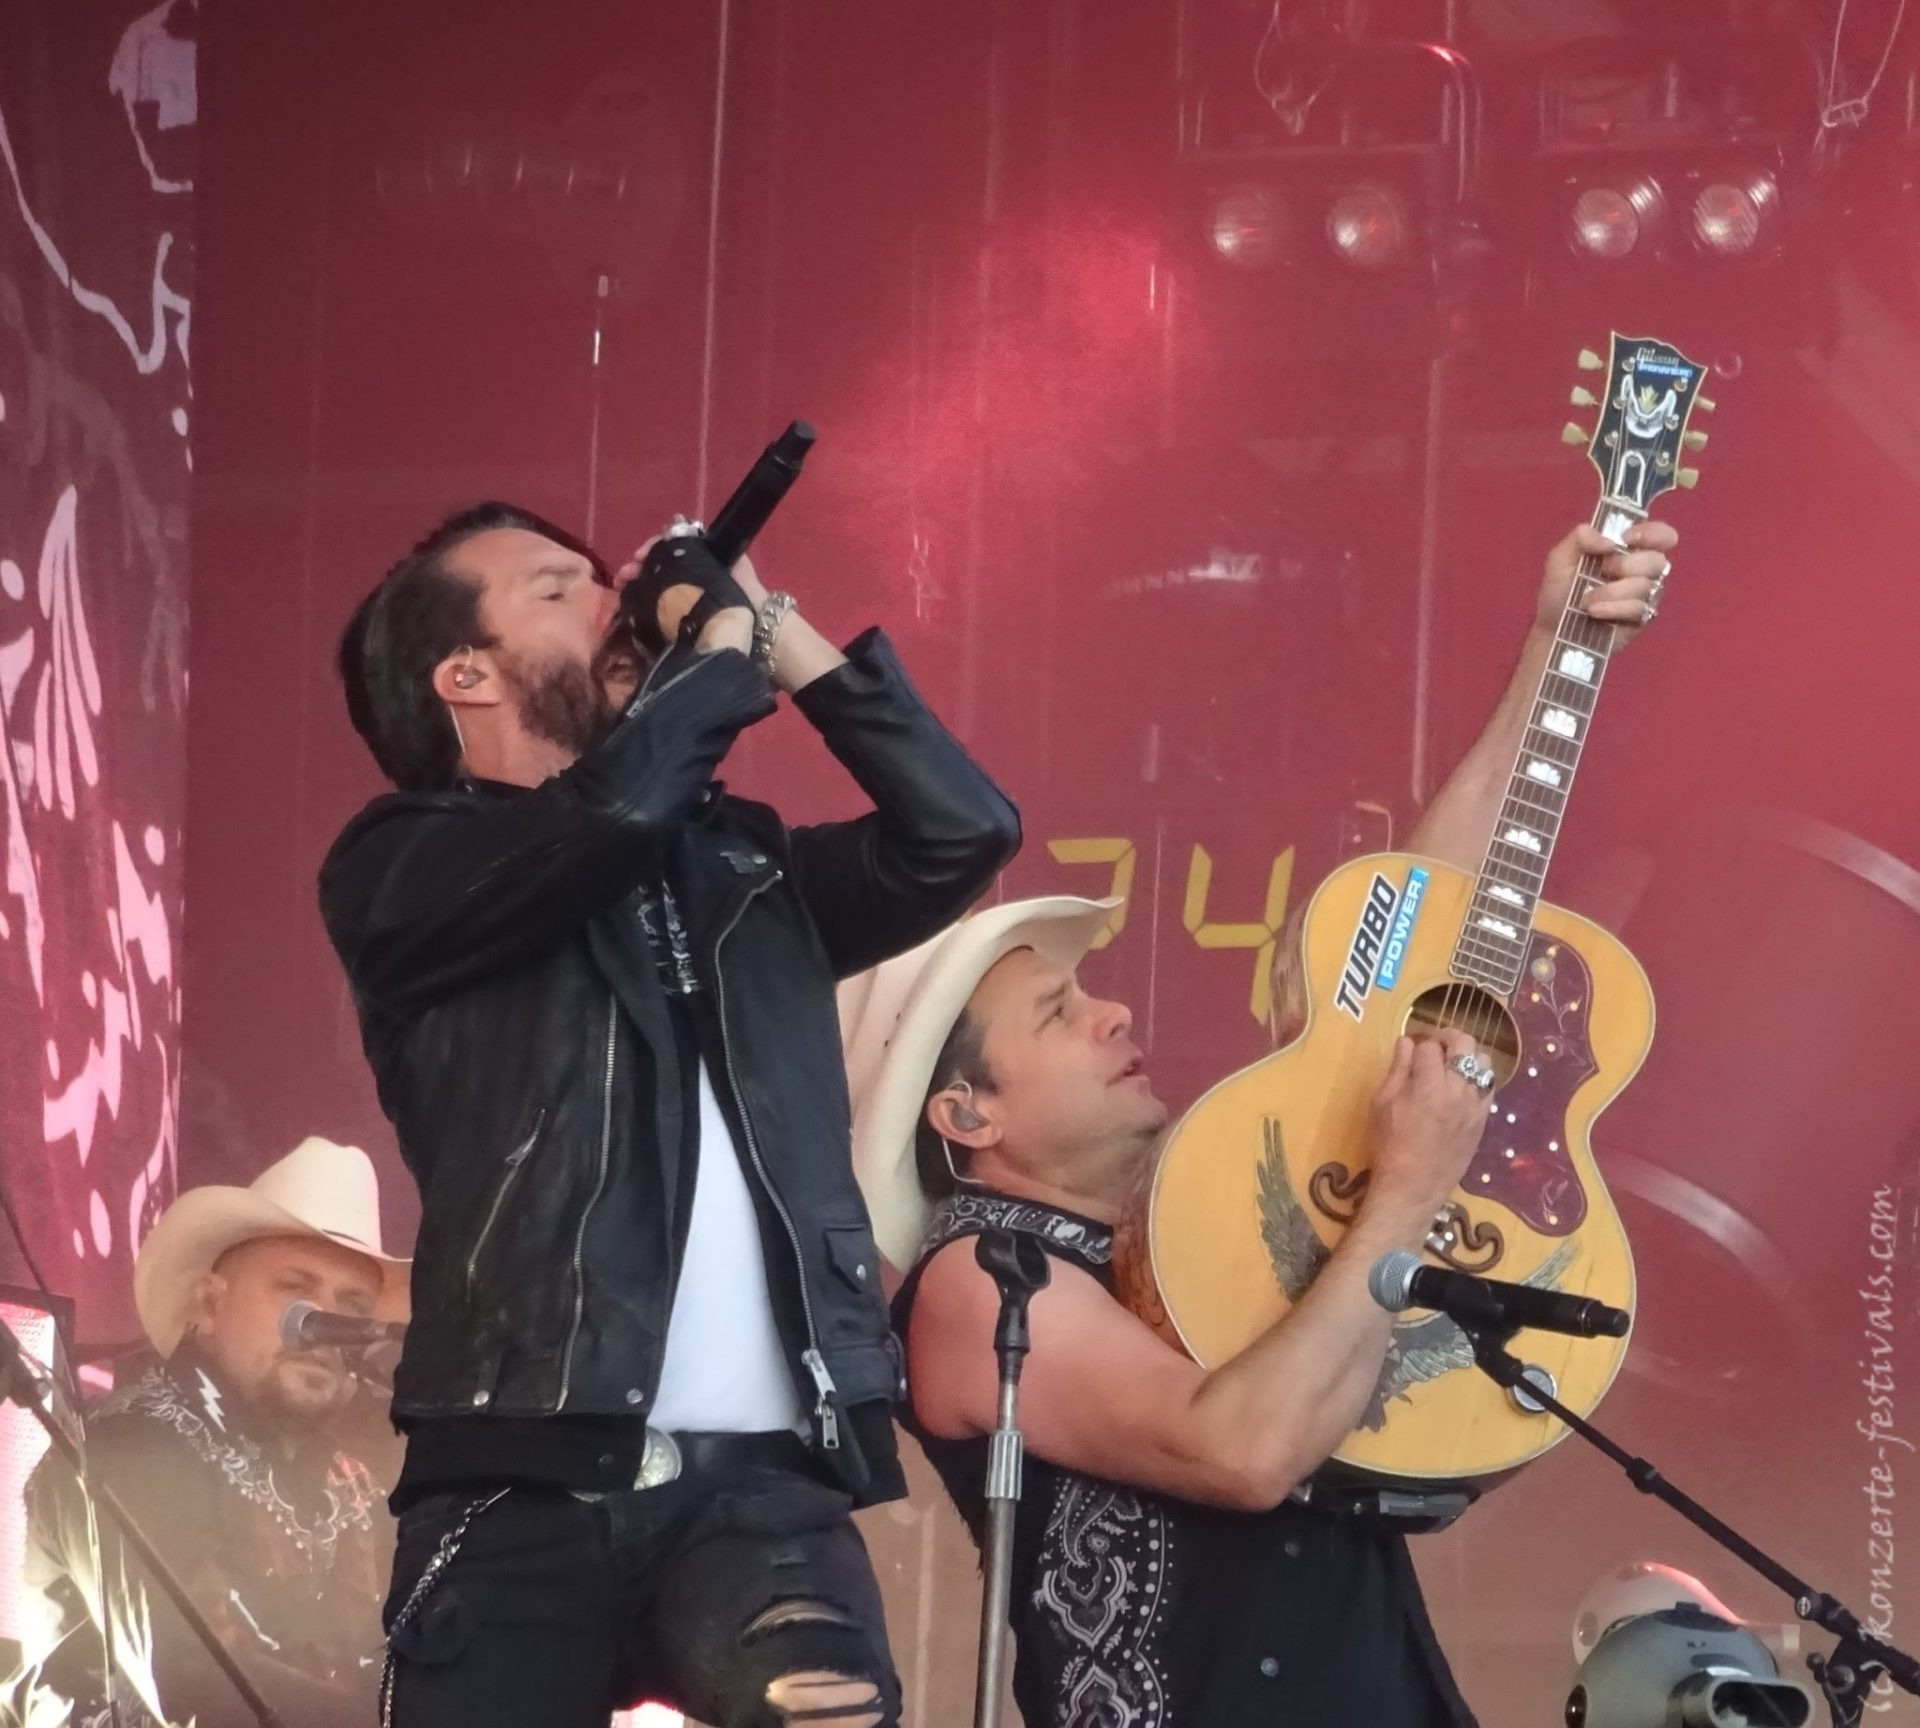 The BossHoss bei Rock am Ring (2019)